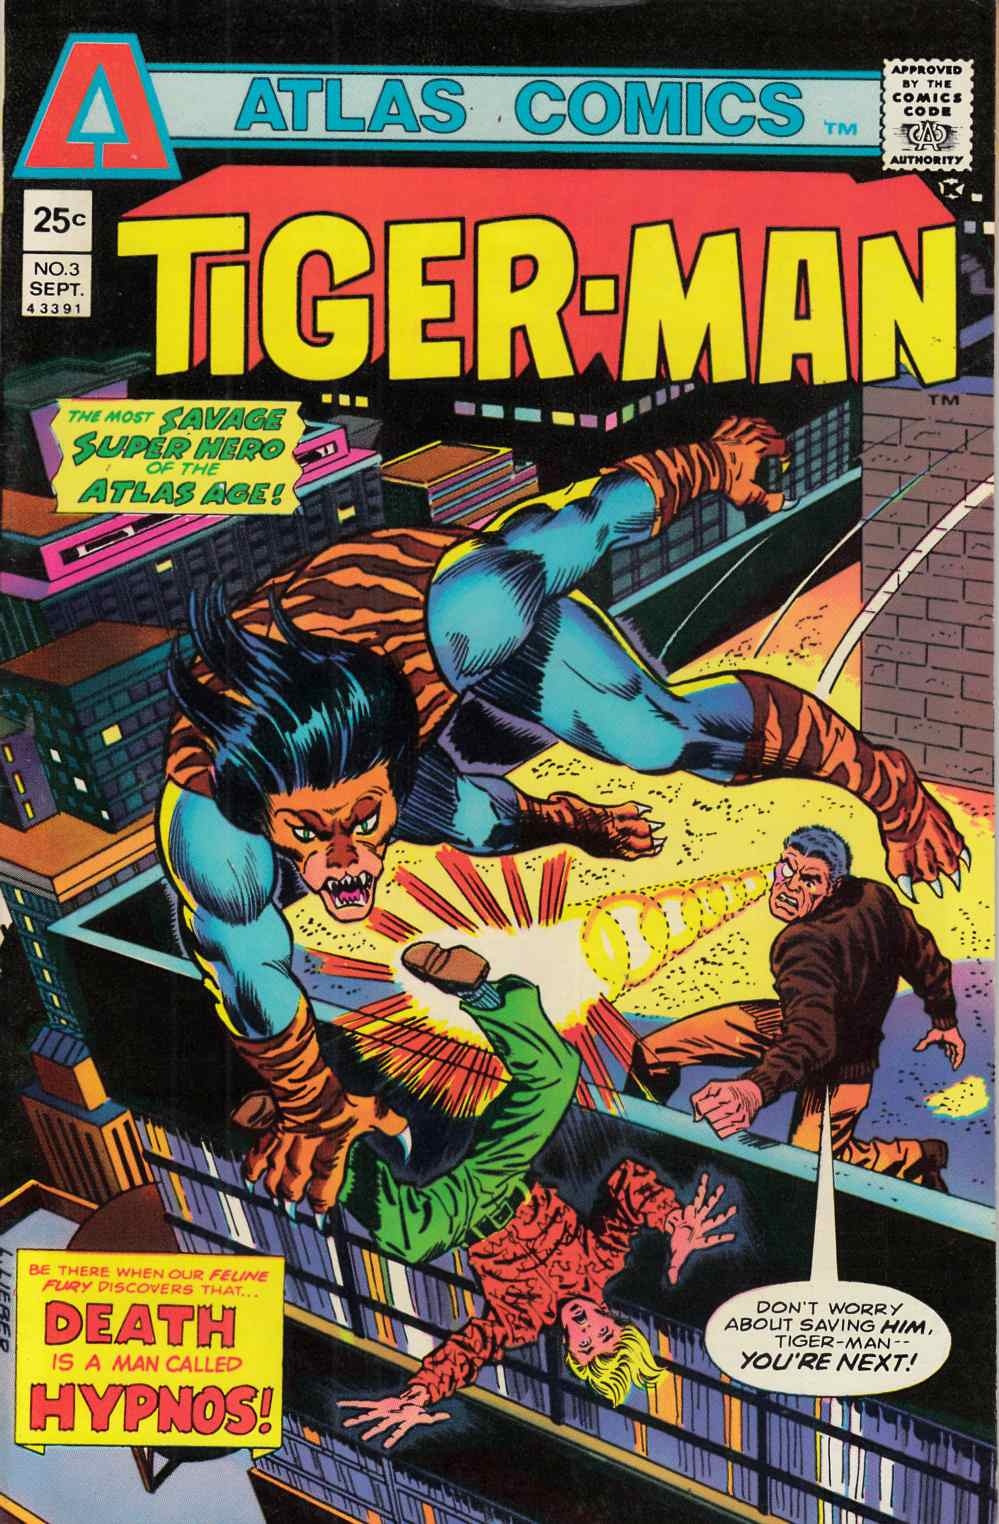 Tiger-Man #3 Very Fine (8.0) [Atlas Comic] THUMBNAIL